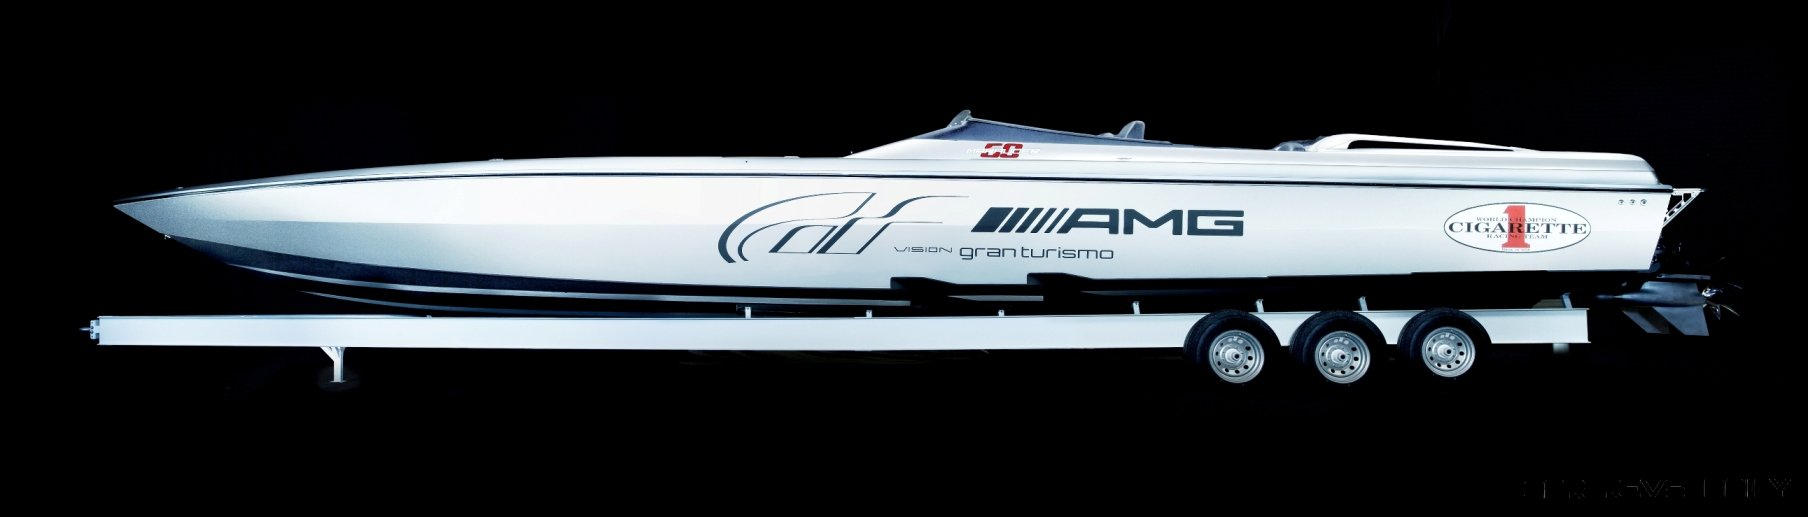 Amg cigarette boat price british automotive for Mercedes benz yacht cost